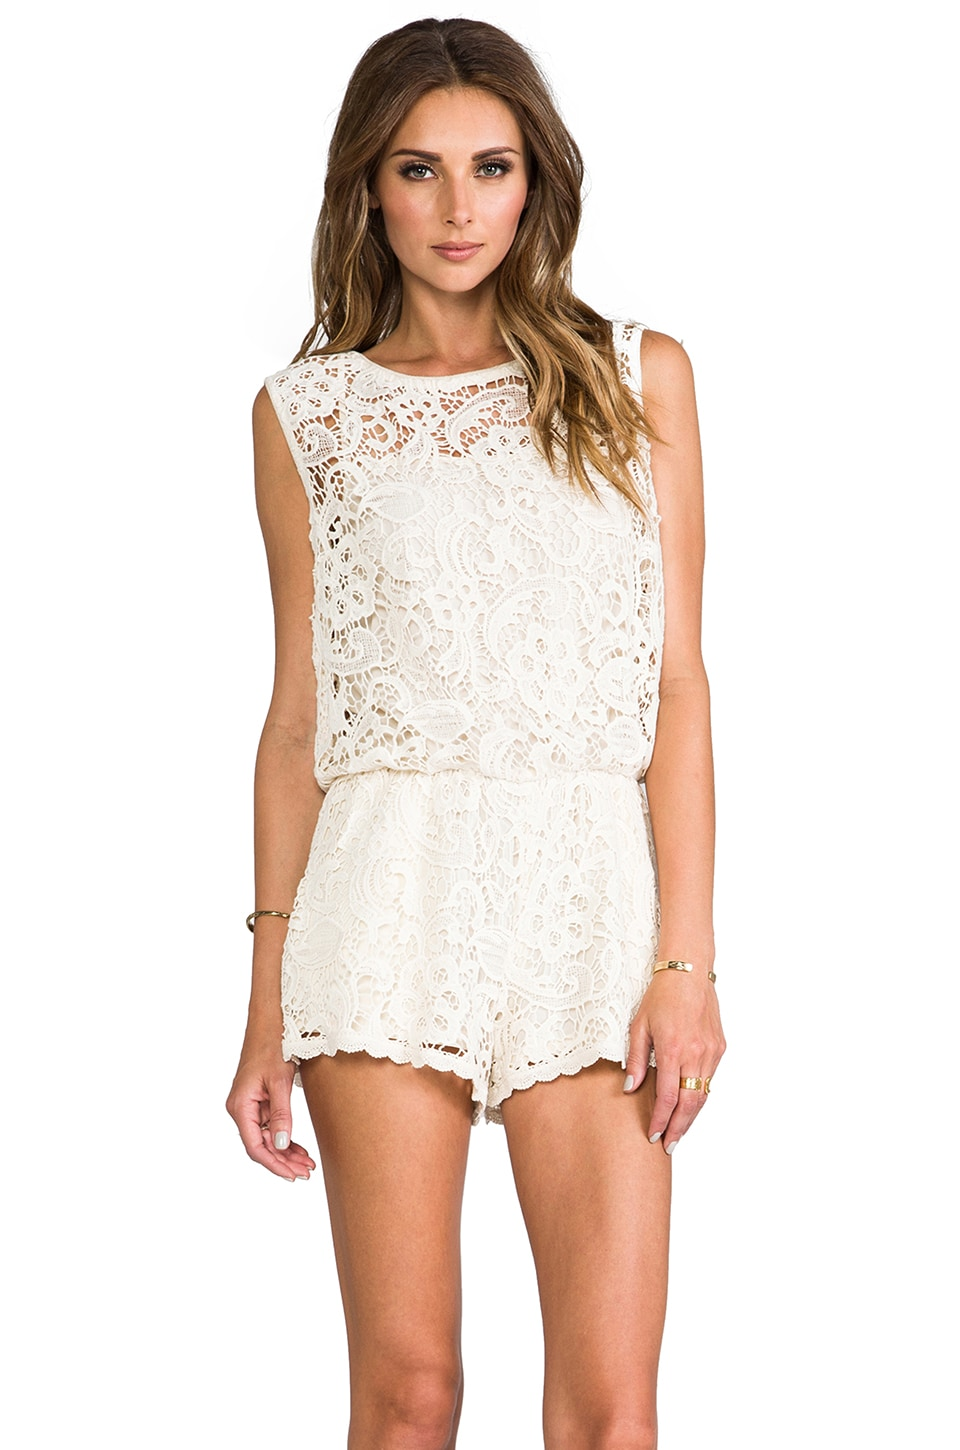 Ella Moss Jaime Lace Romper in Natural